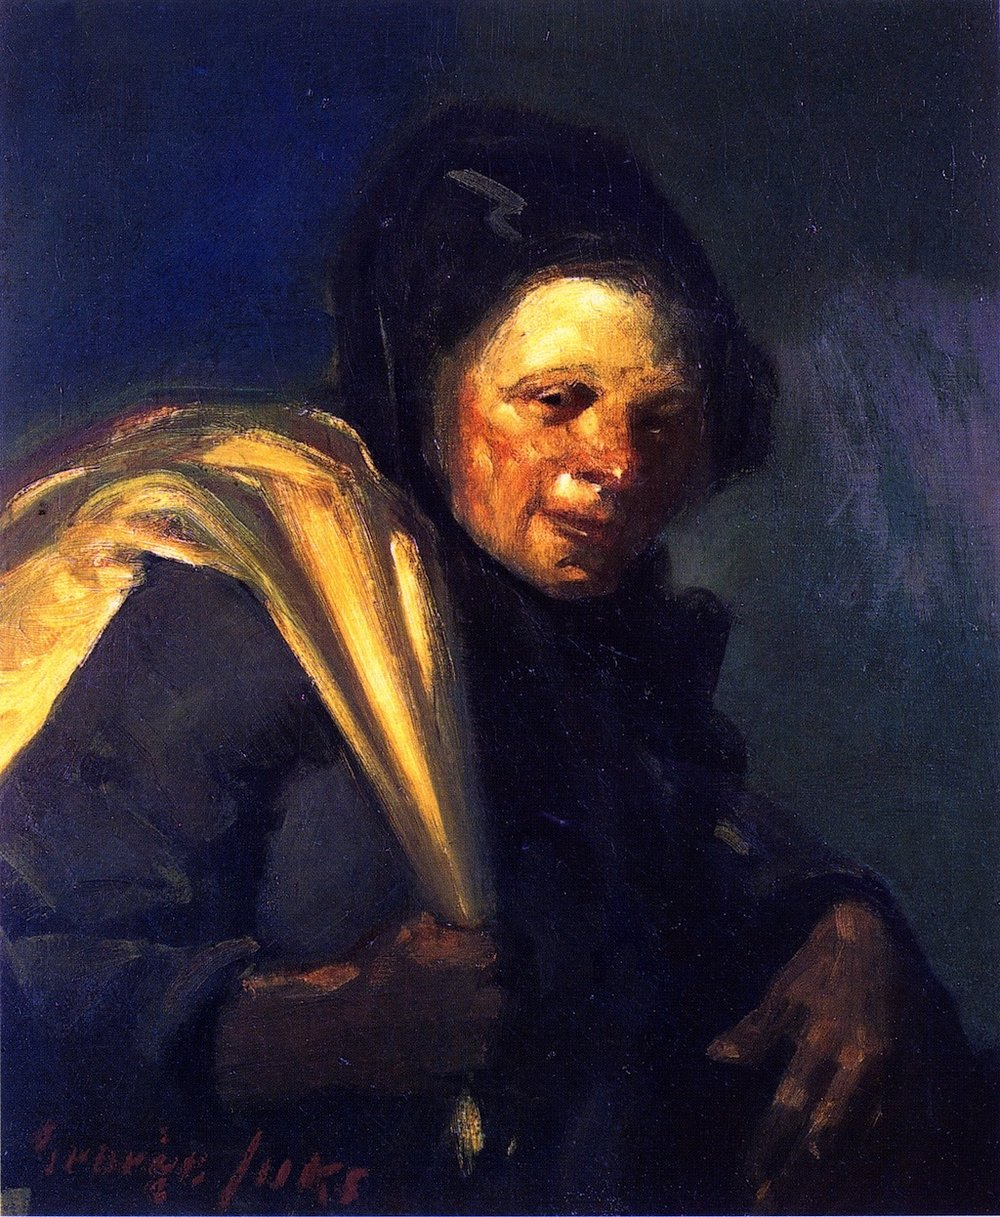 1905c-The-Rag-Picker-oil-on-canvas-66-x-55_9-cm.jpg